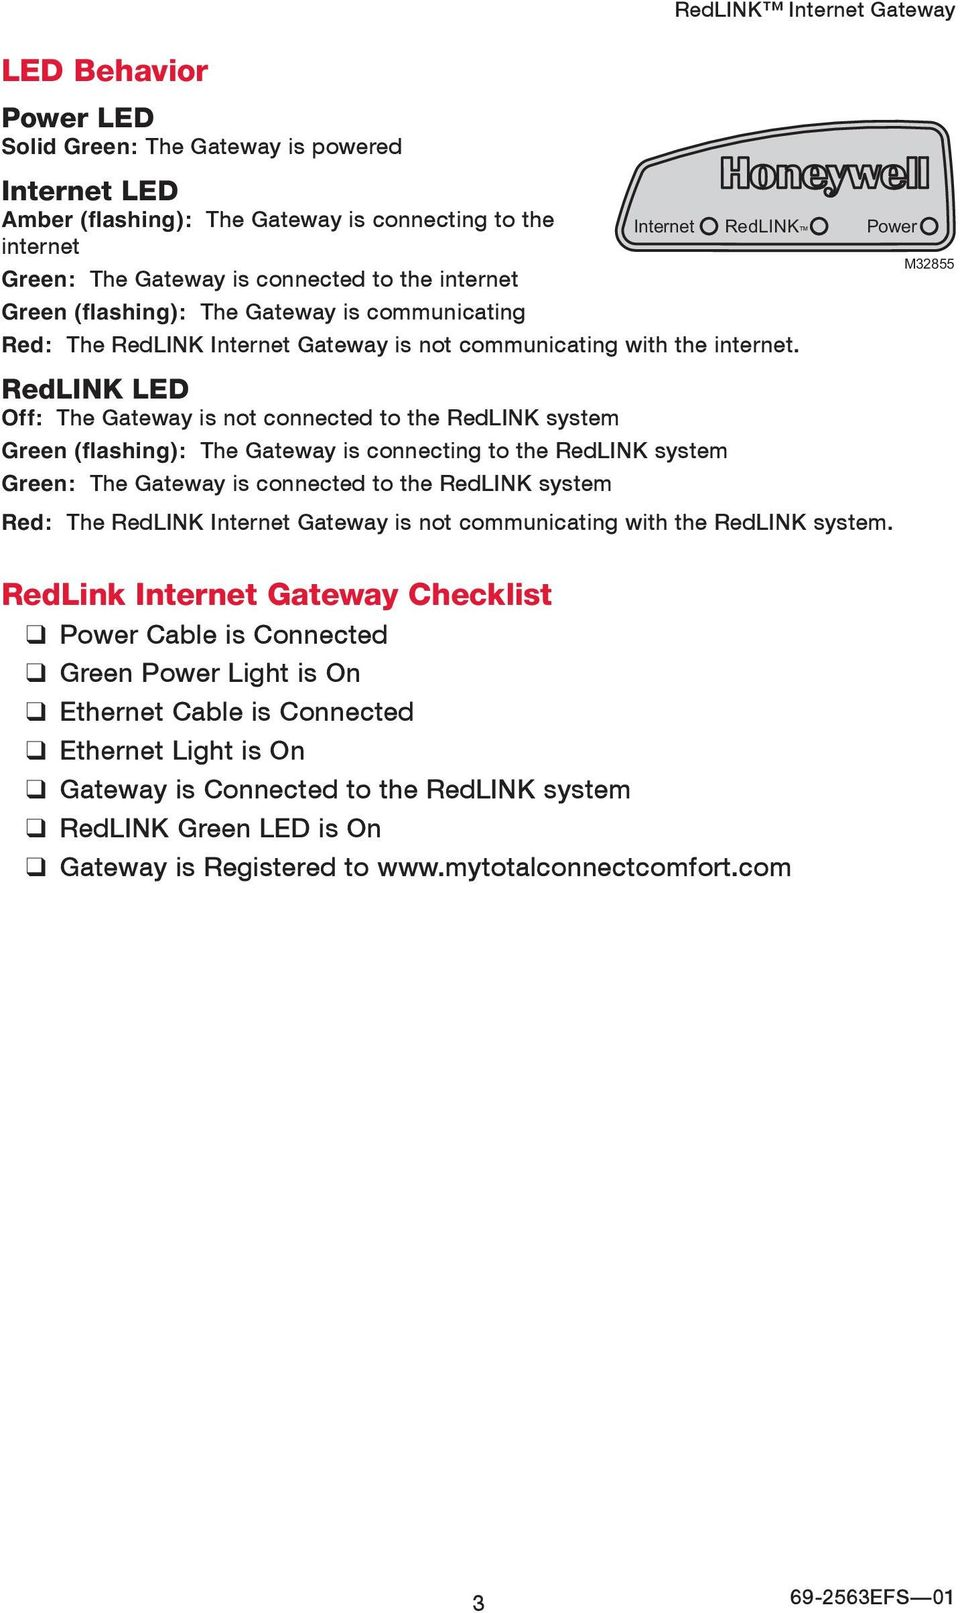 RedLINK LED Off: The Gateway is not connected to the RedLINK system Green (flashing): The Gateway is connecting to the RedLINK system Green: The Gateway is connected to the RedLINK system Red: The